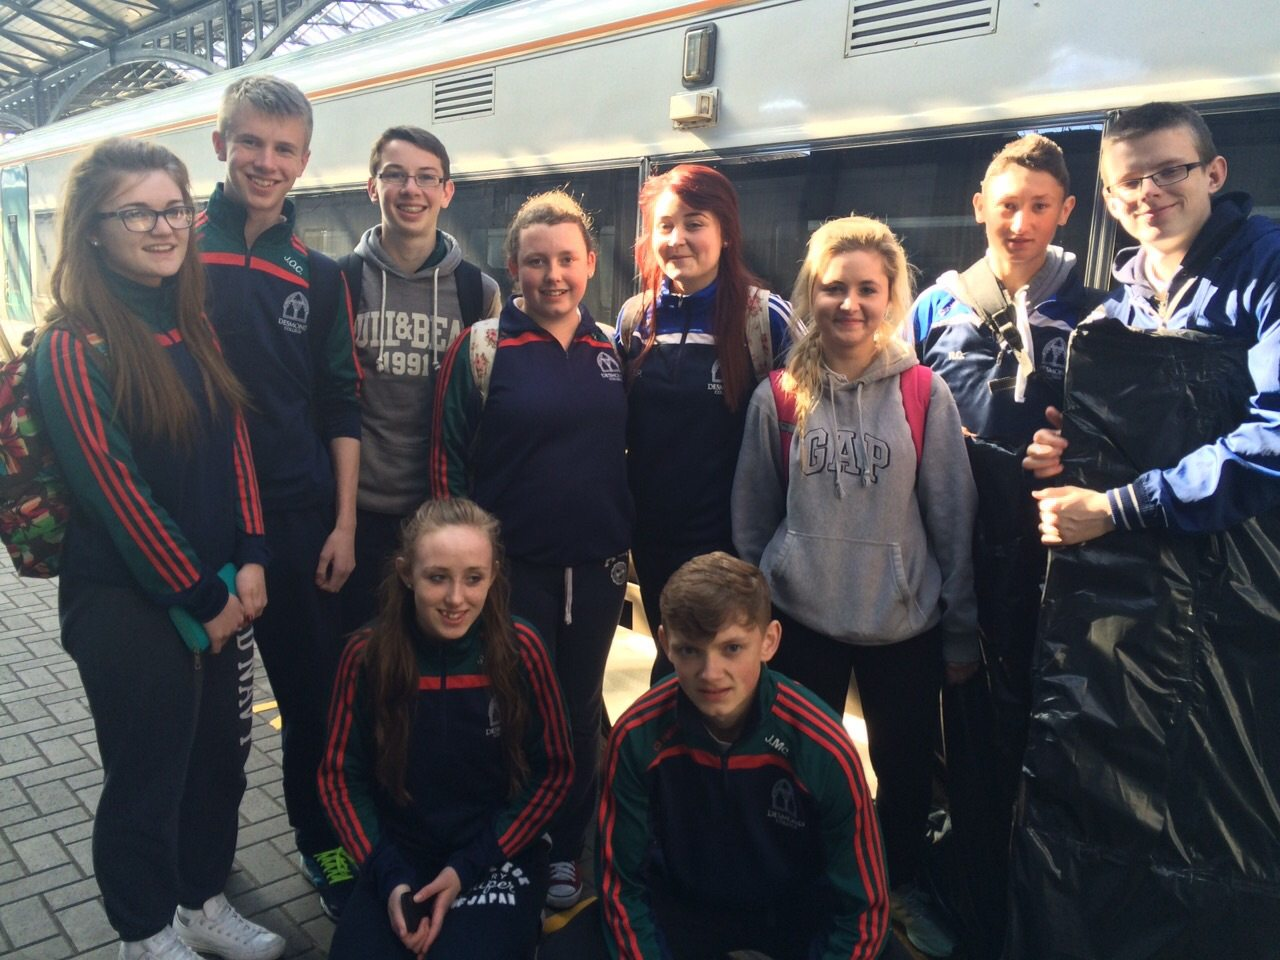 Claire Mortell, Jack O Connor, Cillian McMahon, Patreeze Nugent, Chloe Power, Ava O Connor, Roman Creedon, Conor Reidy, Shauna Hallinan and John McCoy who participated in the PE Exhibition